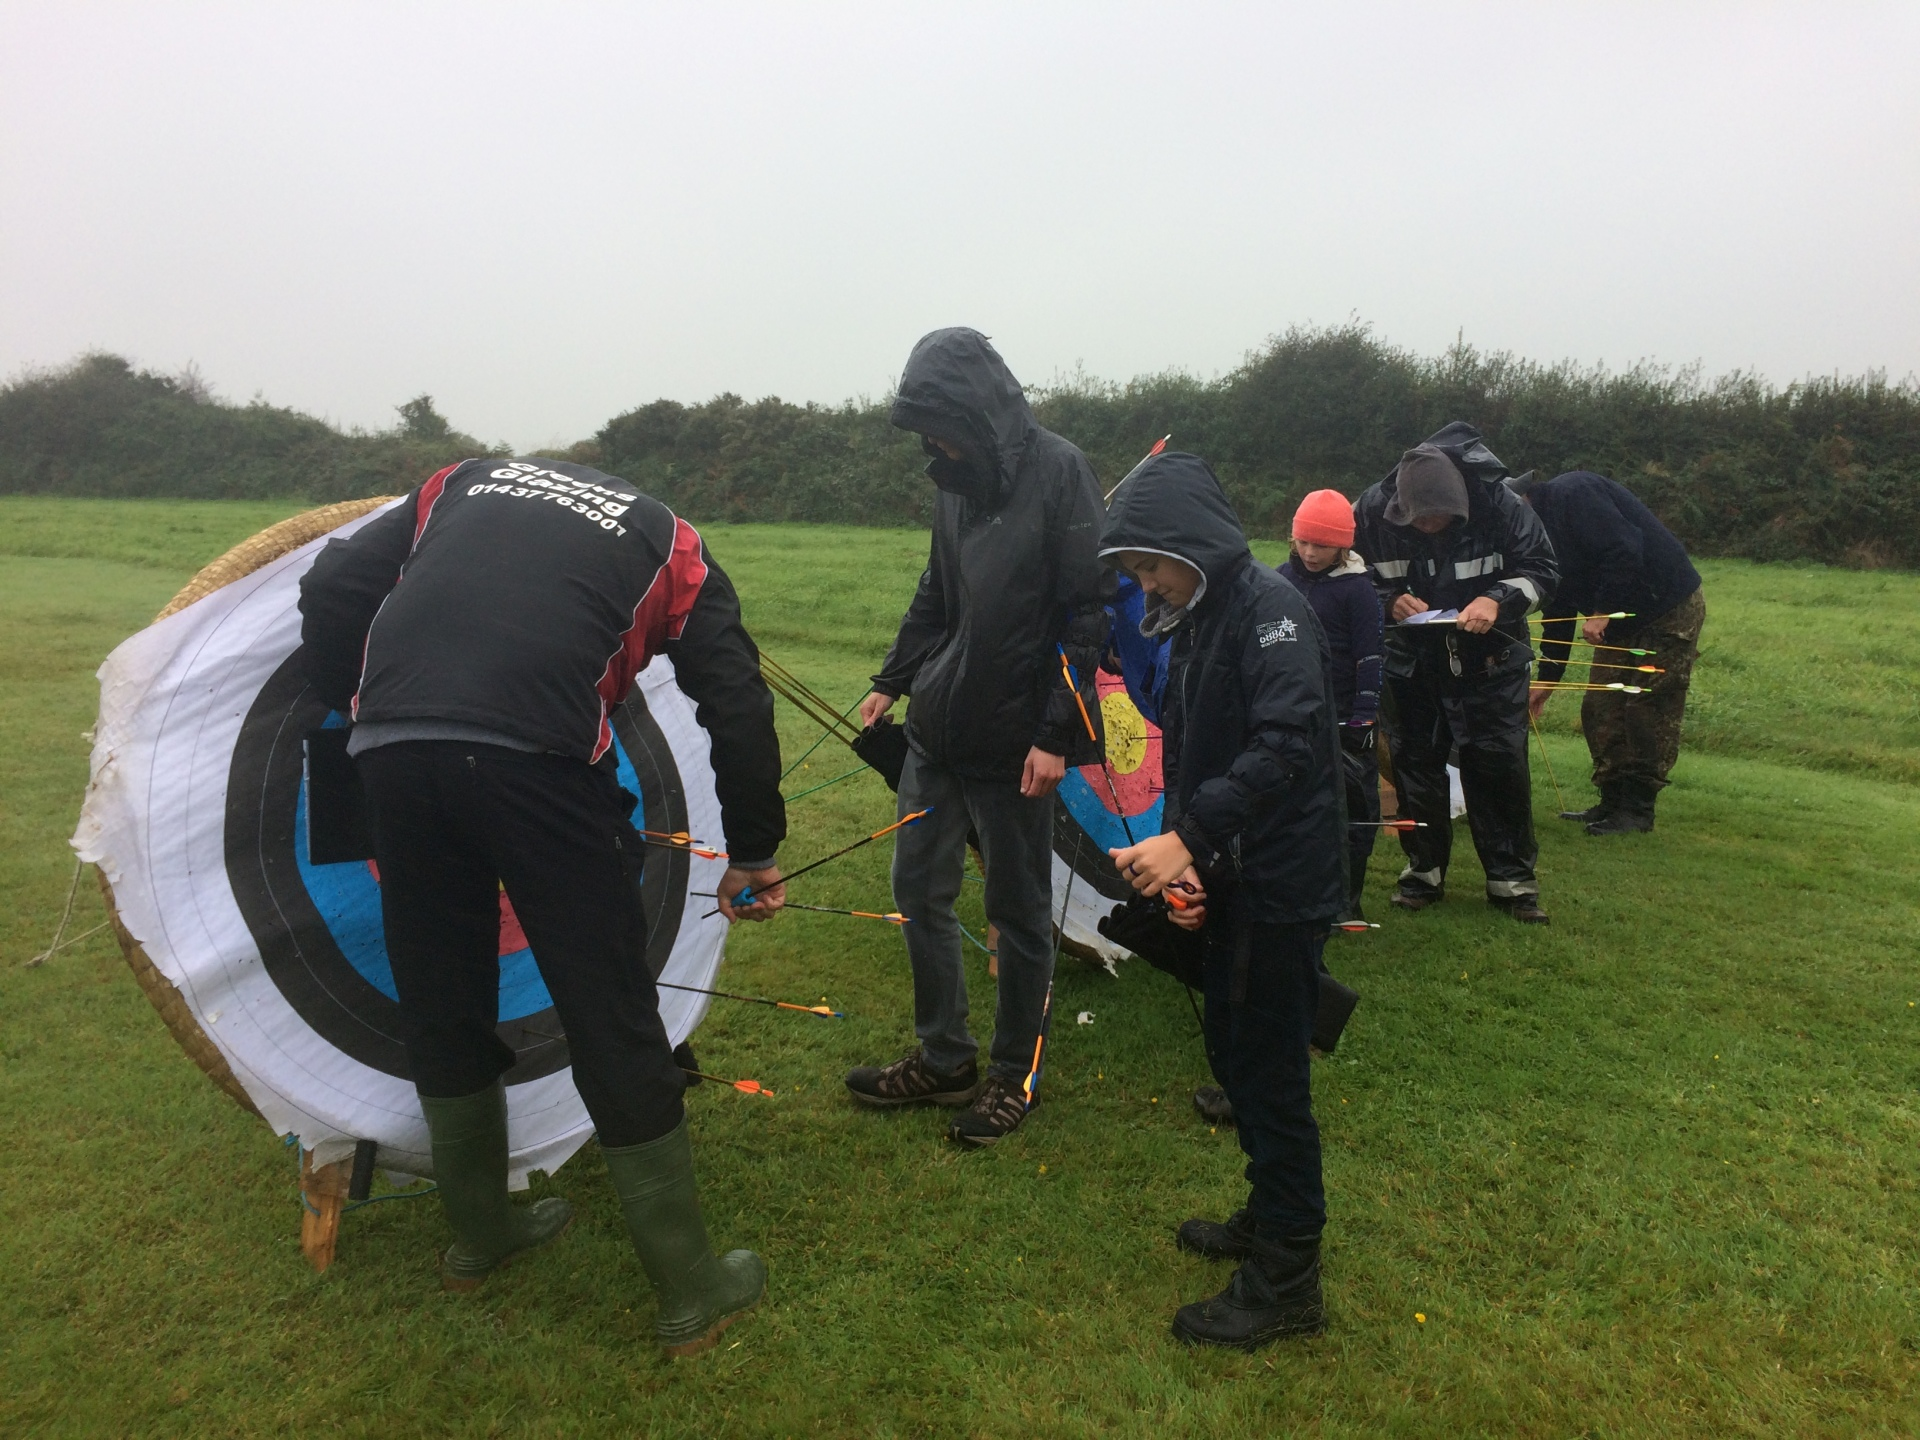 Fort Archers Outdoor Championship. 10/09/2017